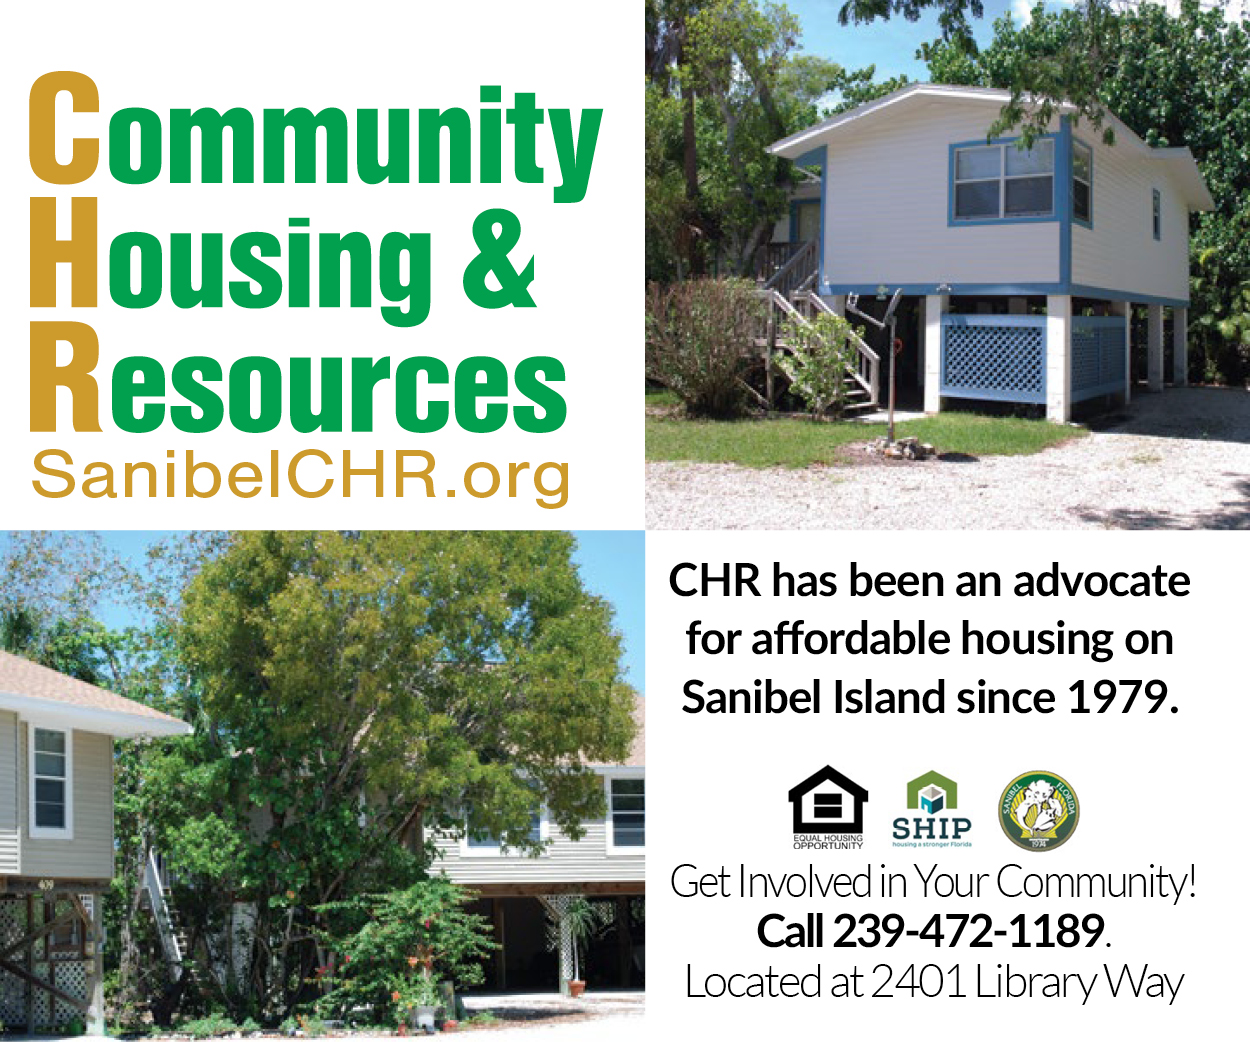 Community Housing & Resources, Inc.